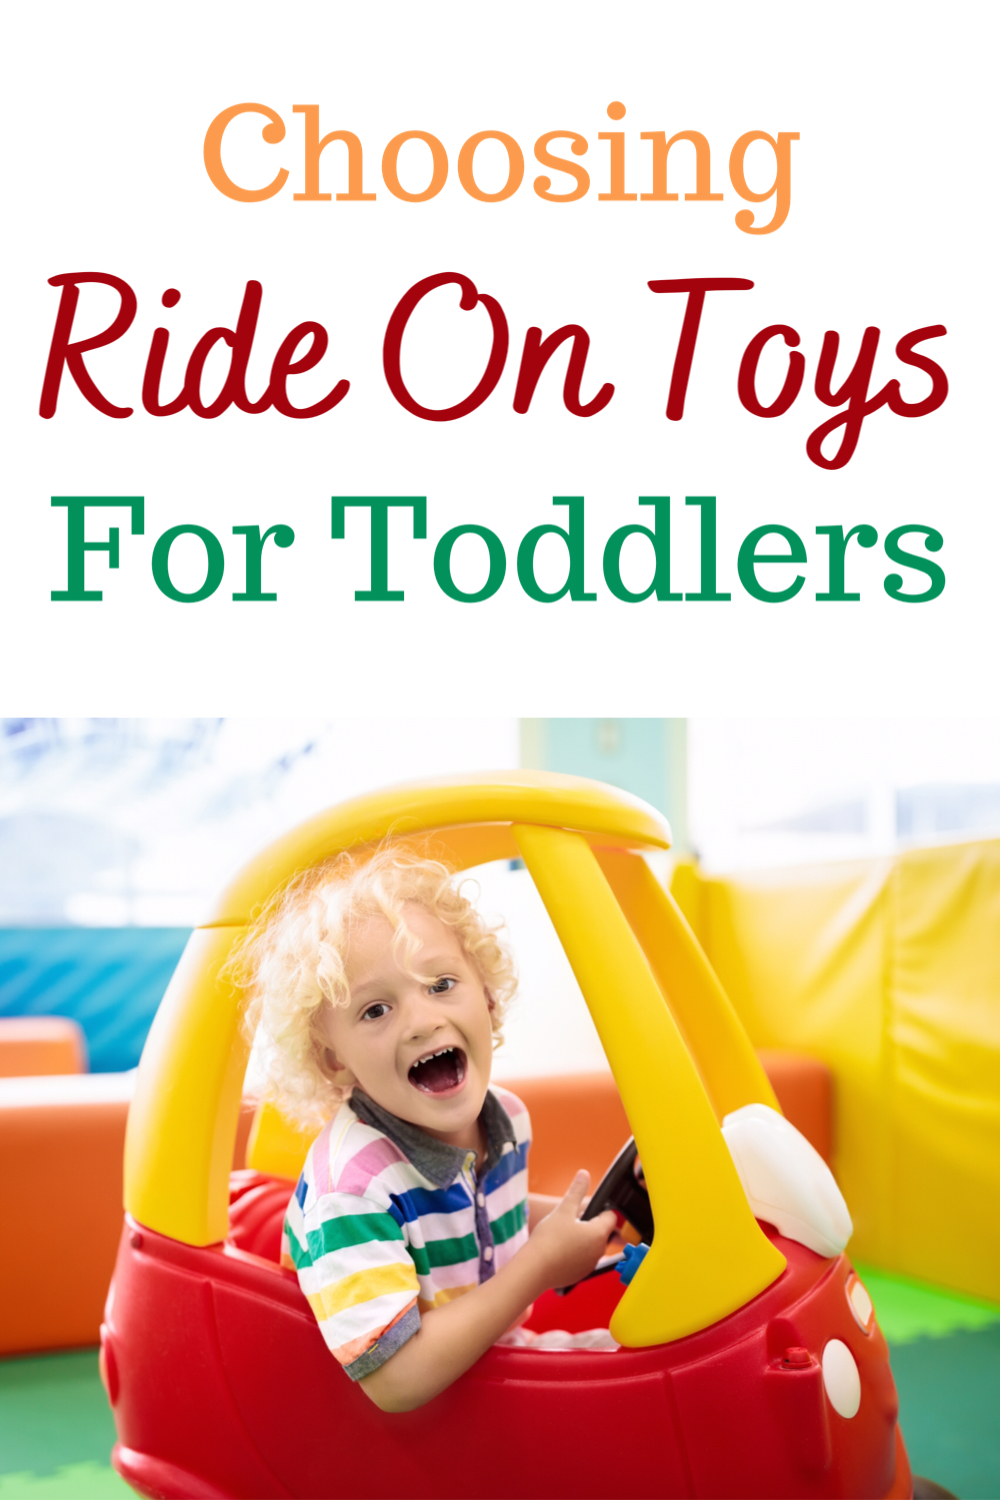 Choosing ride on toys for toddlers